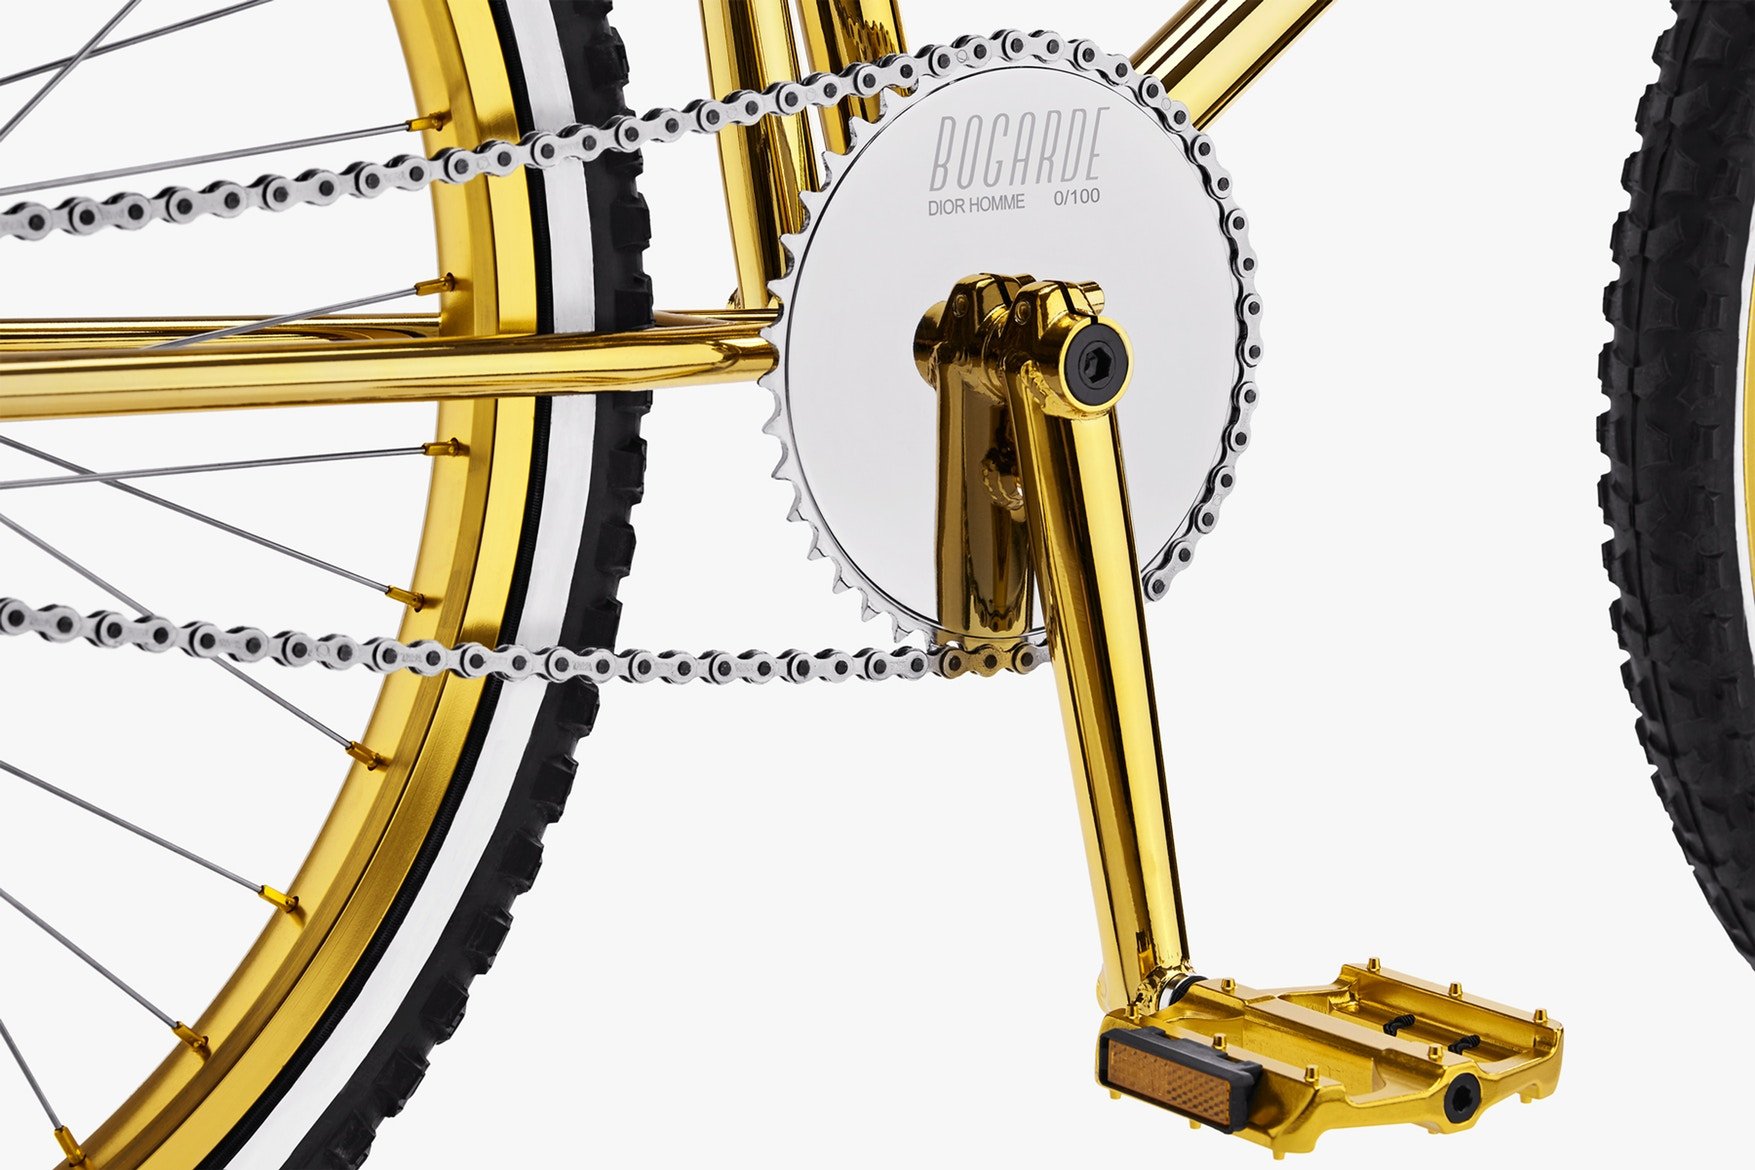 dior-gold-Bogarde-bmx-bike-4